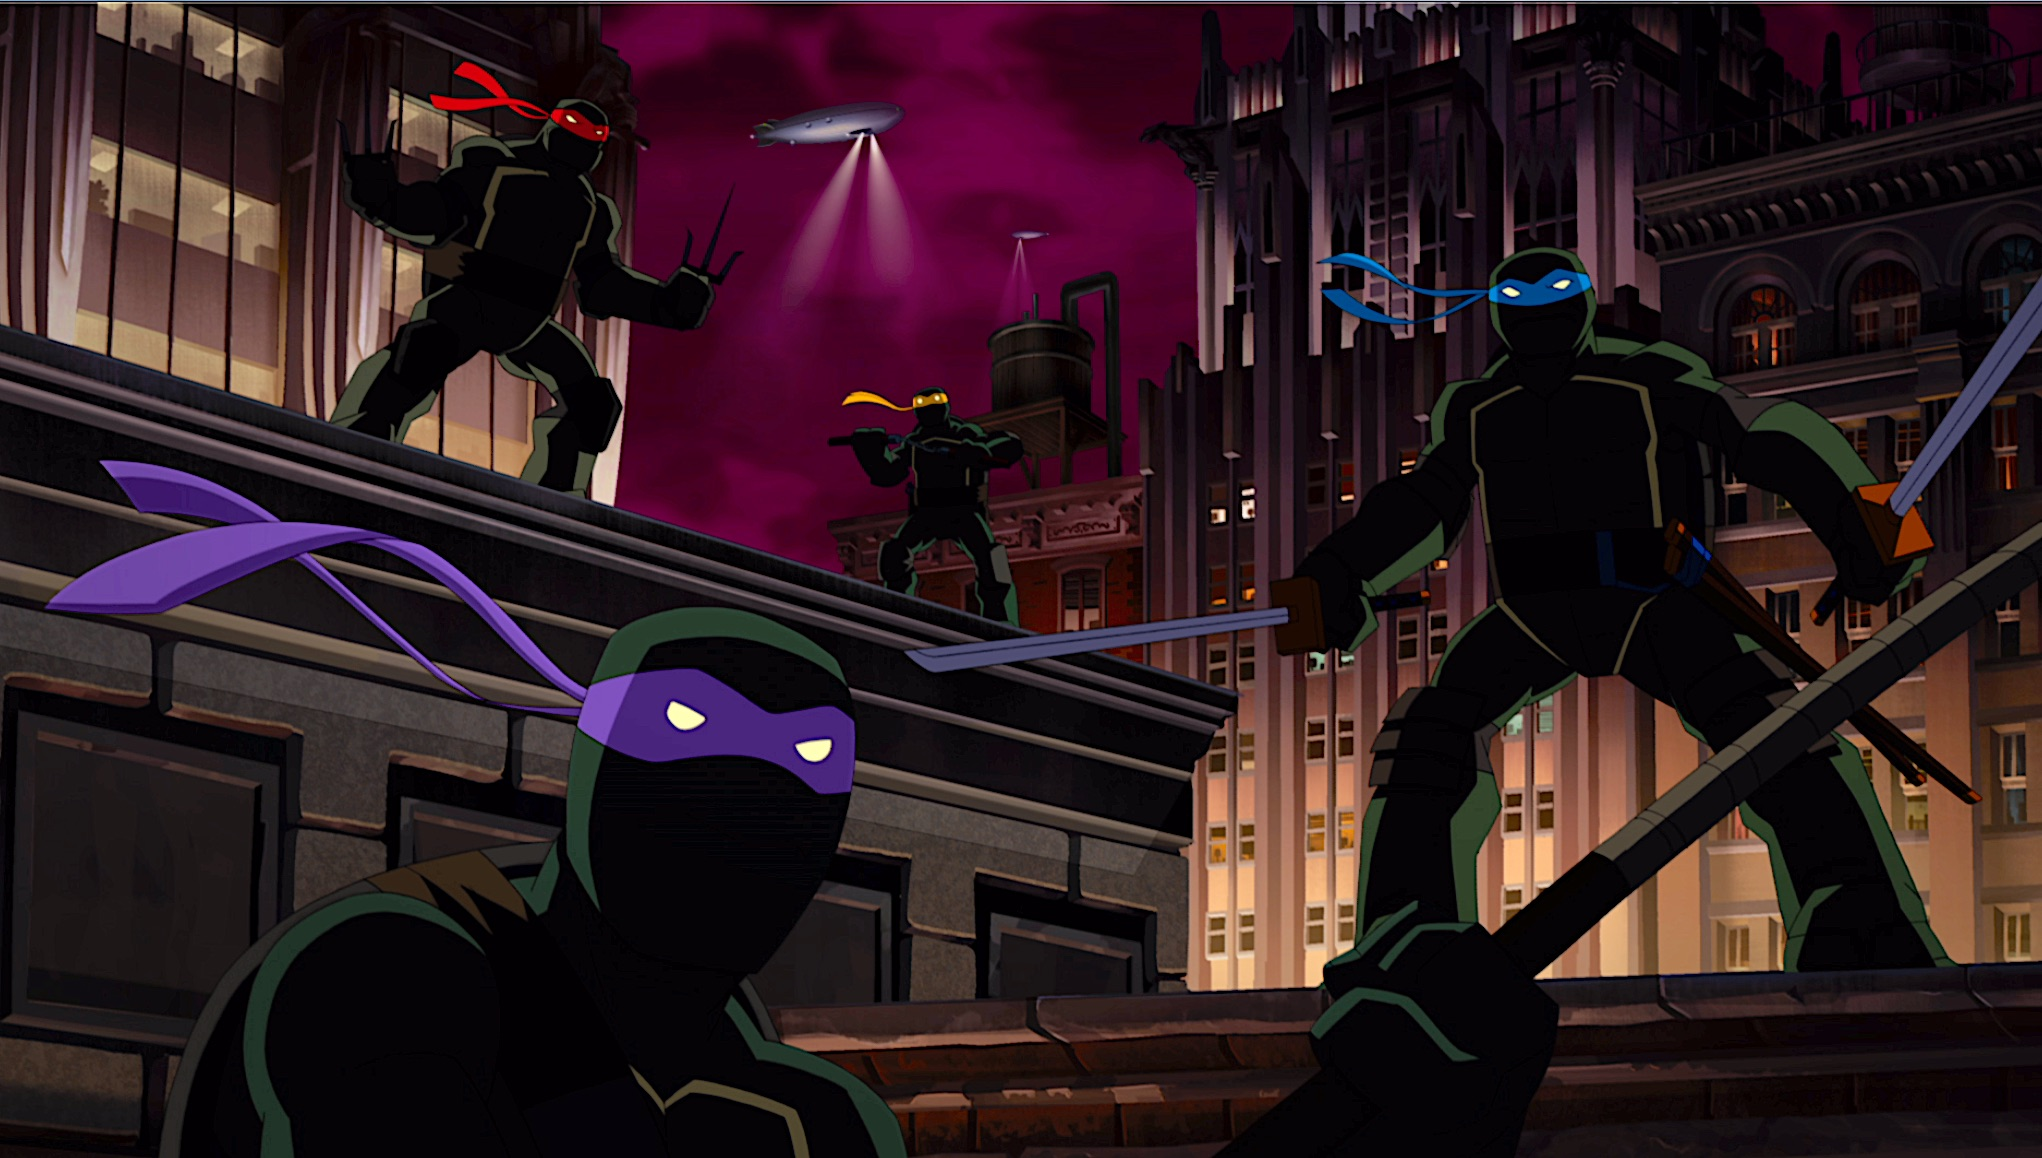 Batman-TMNT Turtles rooftop.jpg